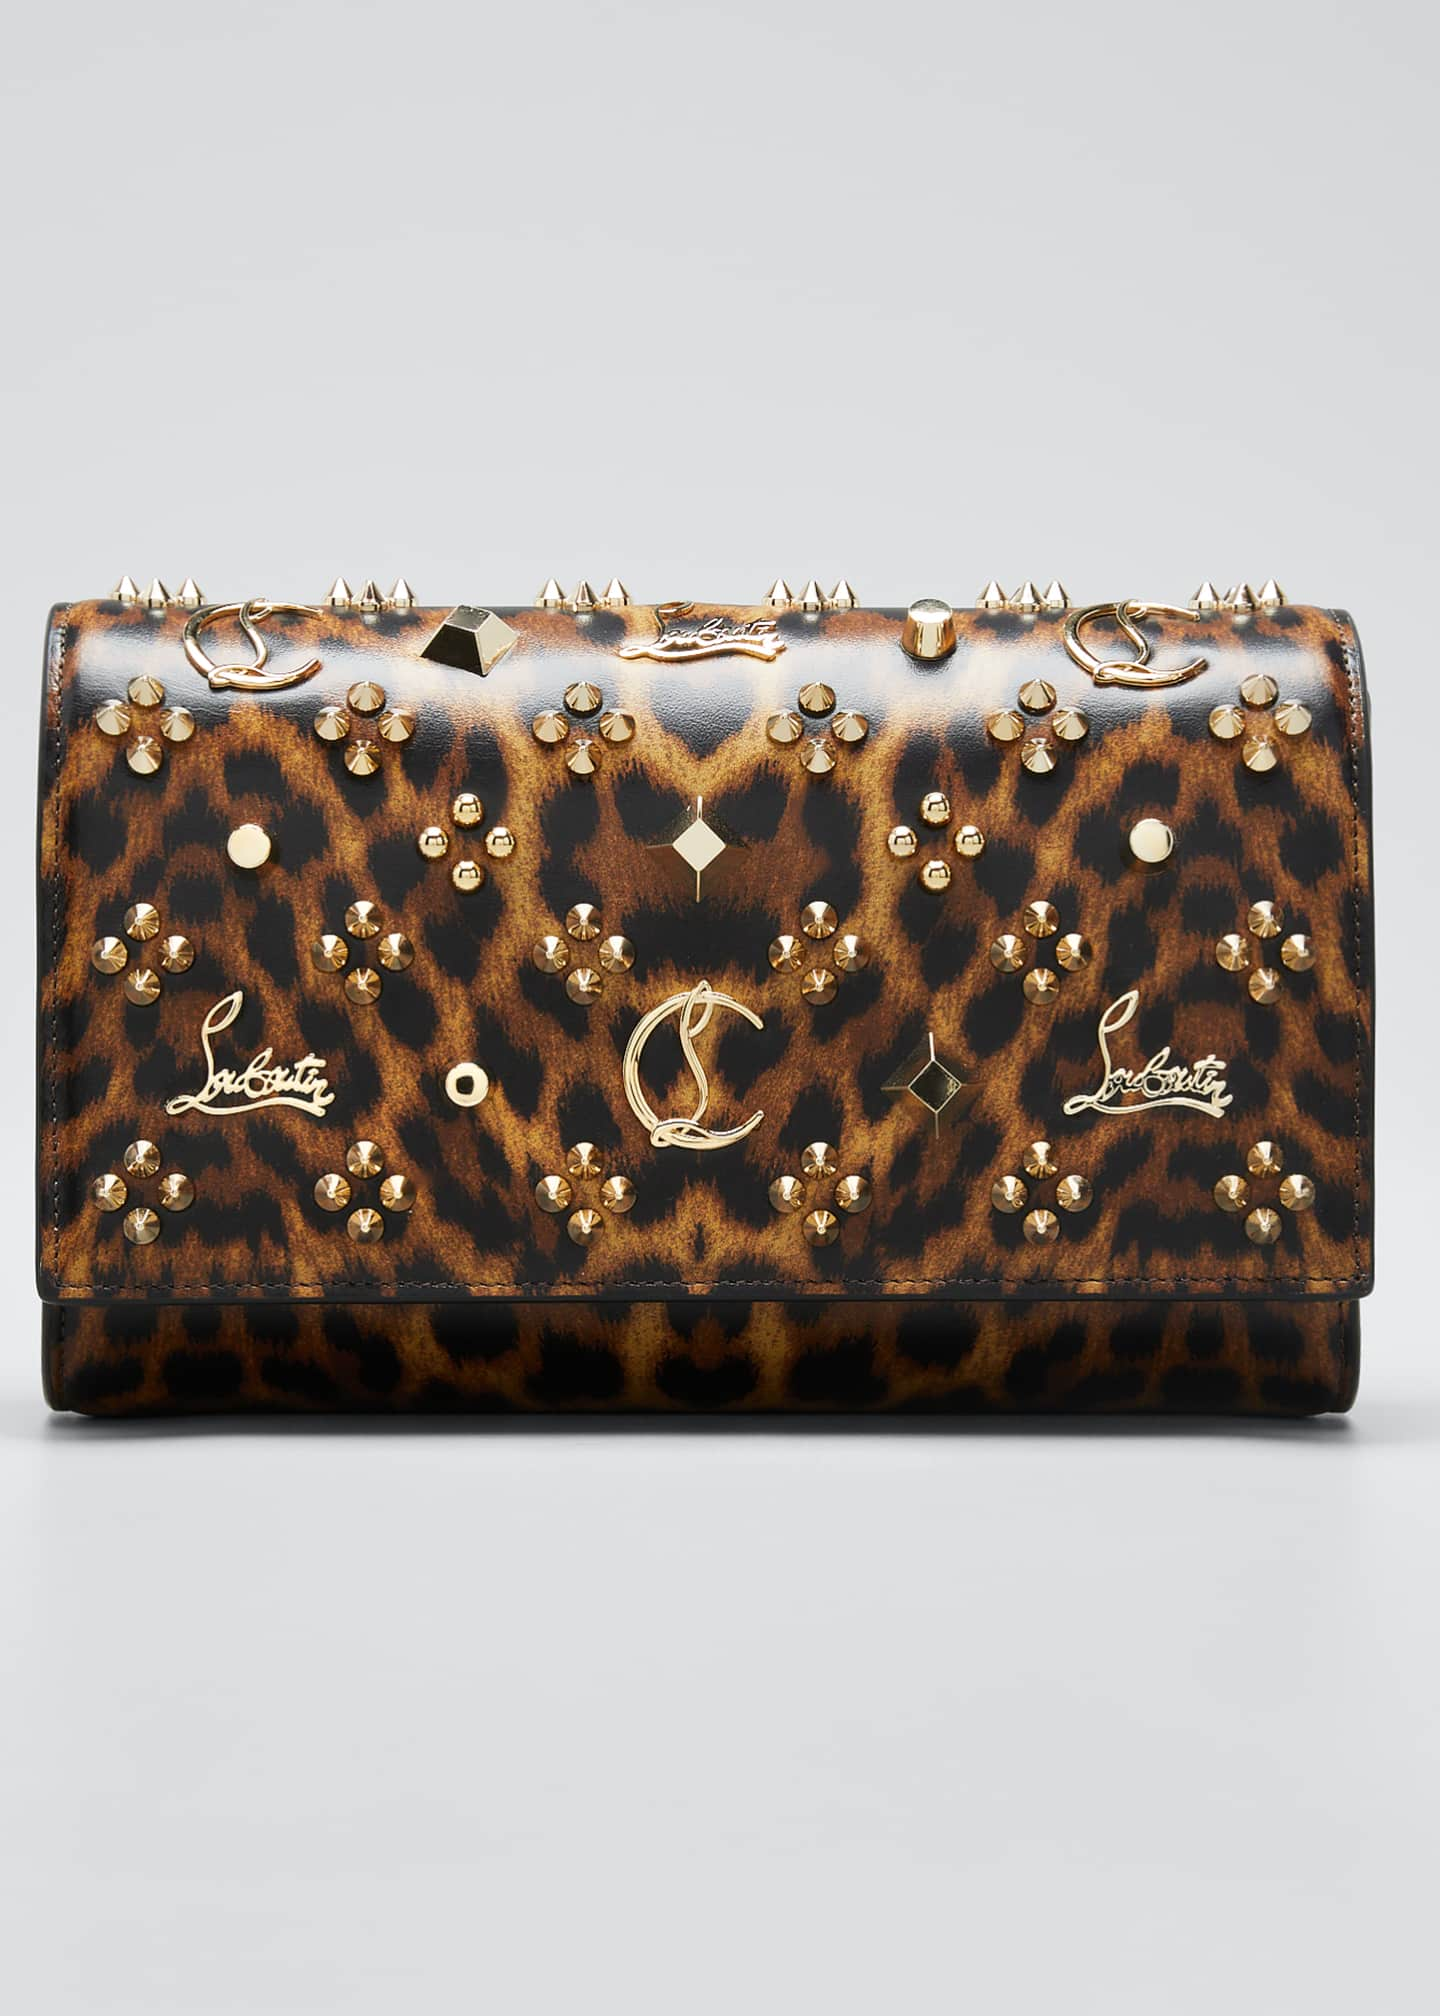 Christian Louboutin Paloma Leopard Patent Clutch Bag